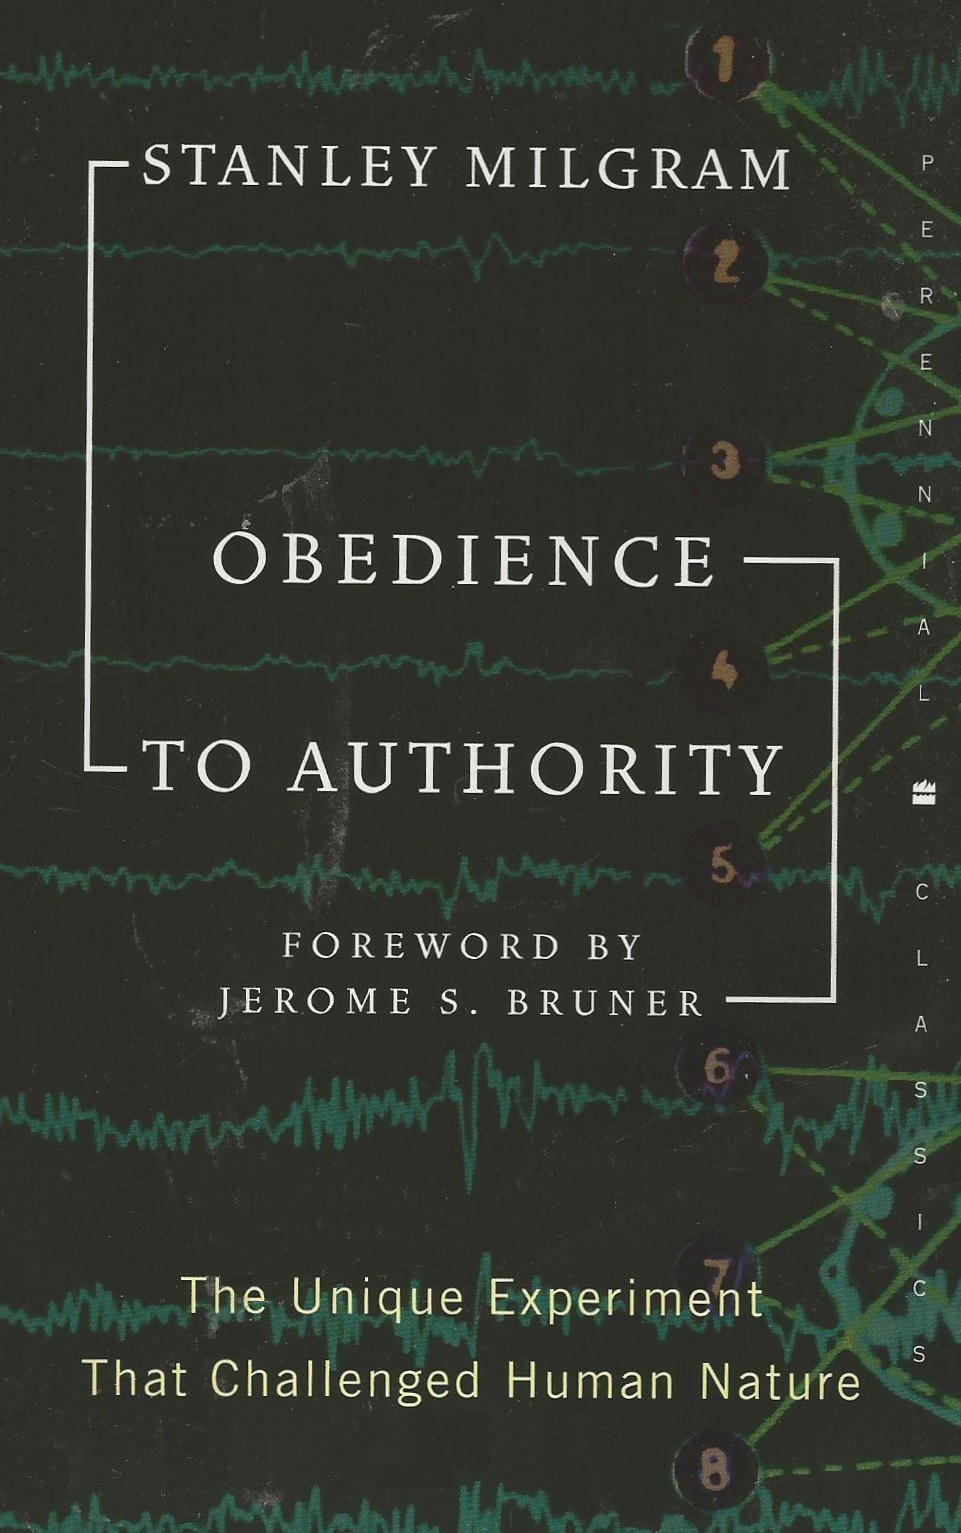 what have we learned from obedience to authority Obedience is a form of social influence that involves performing an action under the orders of an authority figure it differs from compliance (which involves changing your behavior at the request of another person) and conformity (which involves altering your behavior in order to go along with the rest of the group) instead, obedience involves altering your behavior because a figure of.